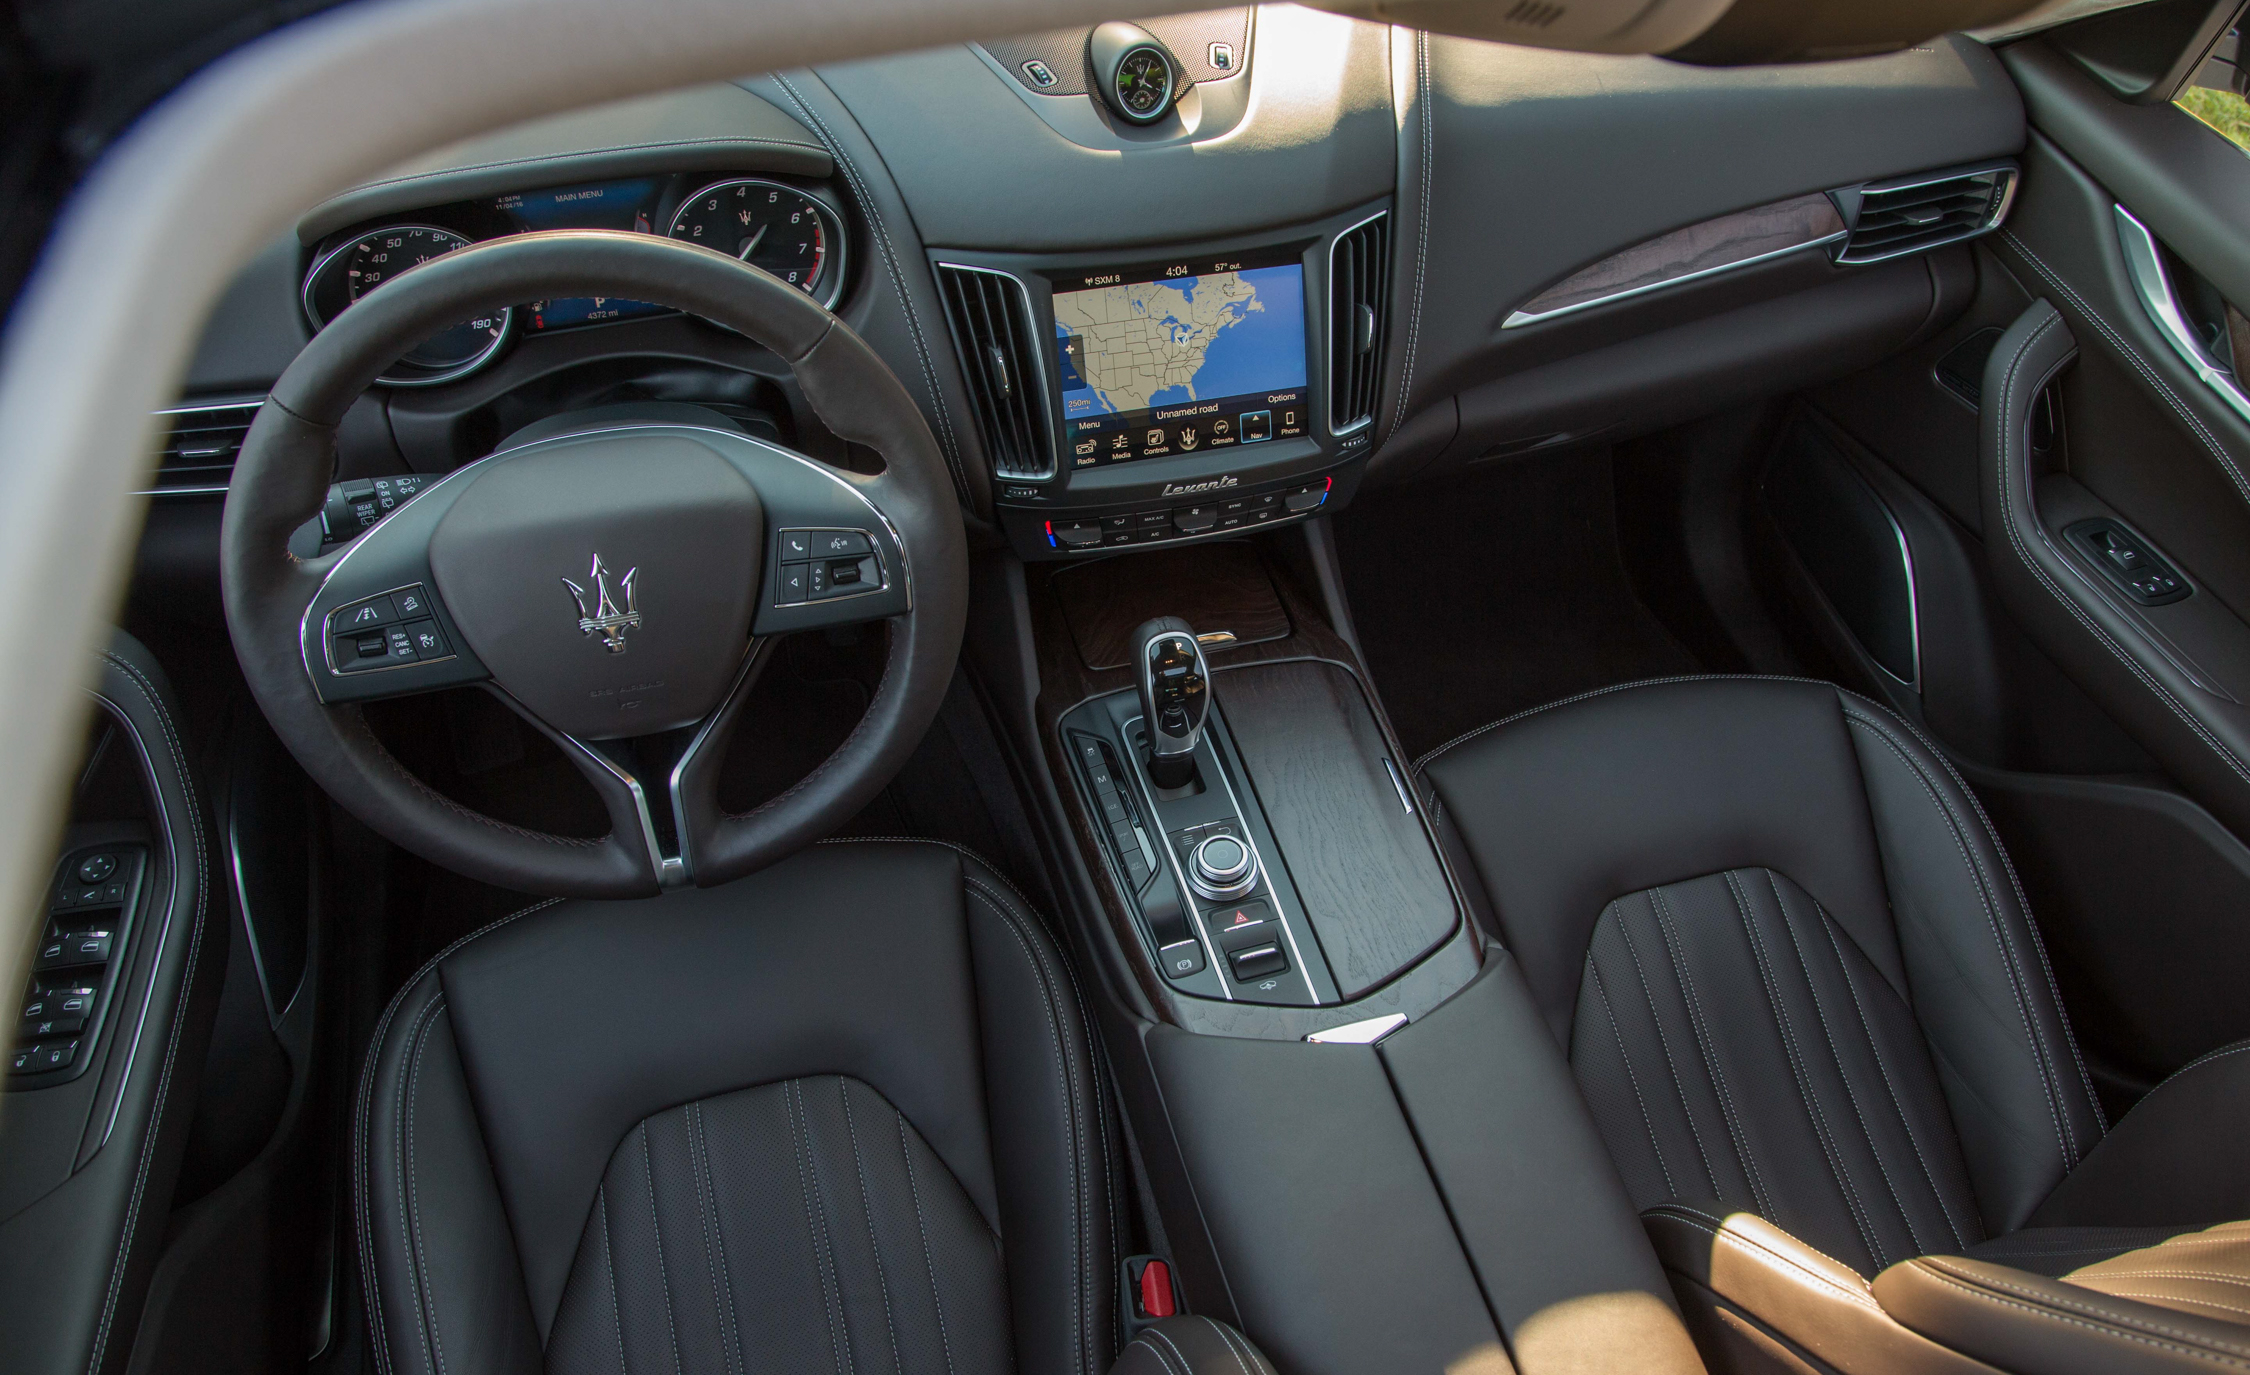 2017 Maserati Levante S Q4 Interior Dashboard (Photo 9 of 21)